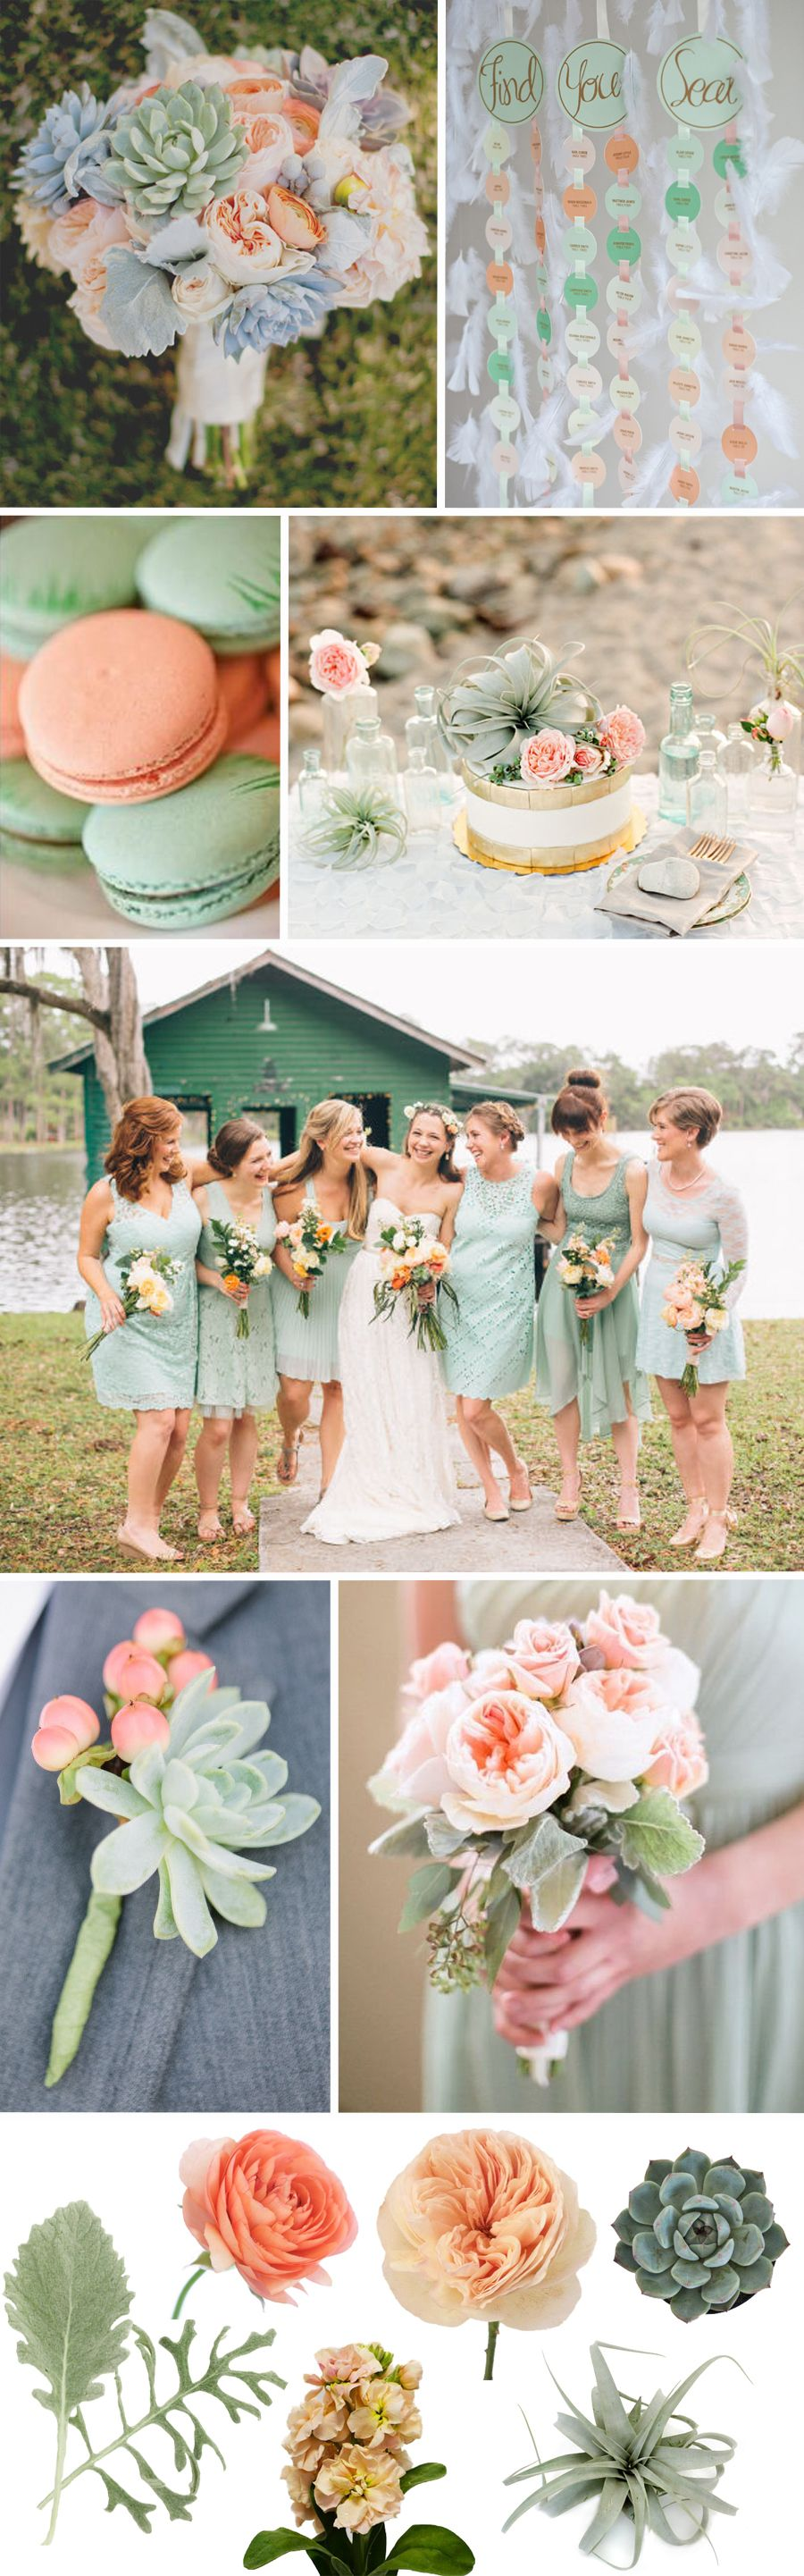 Fiftyflowers Peach Sage Wedding Inspiration Color Schemes June Colors